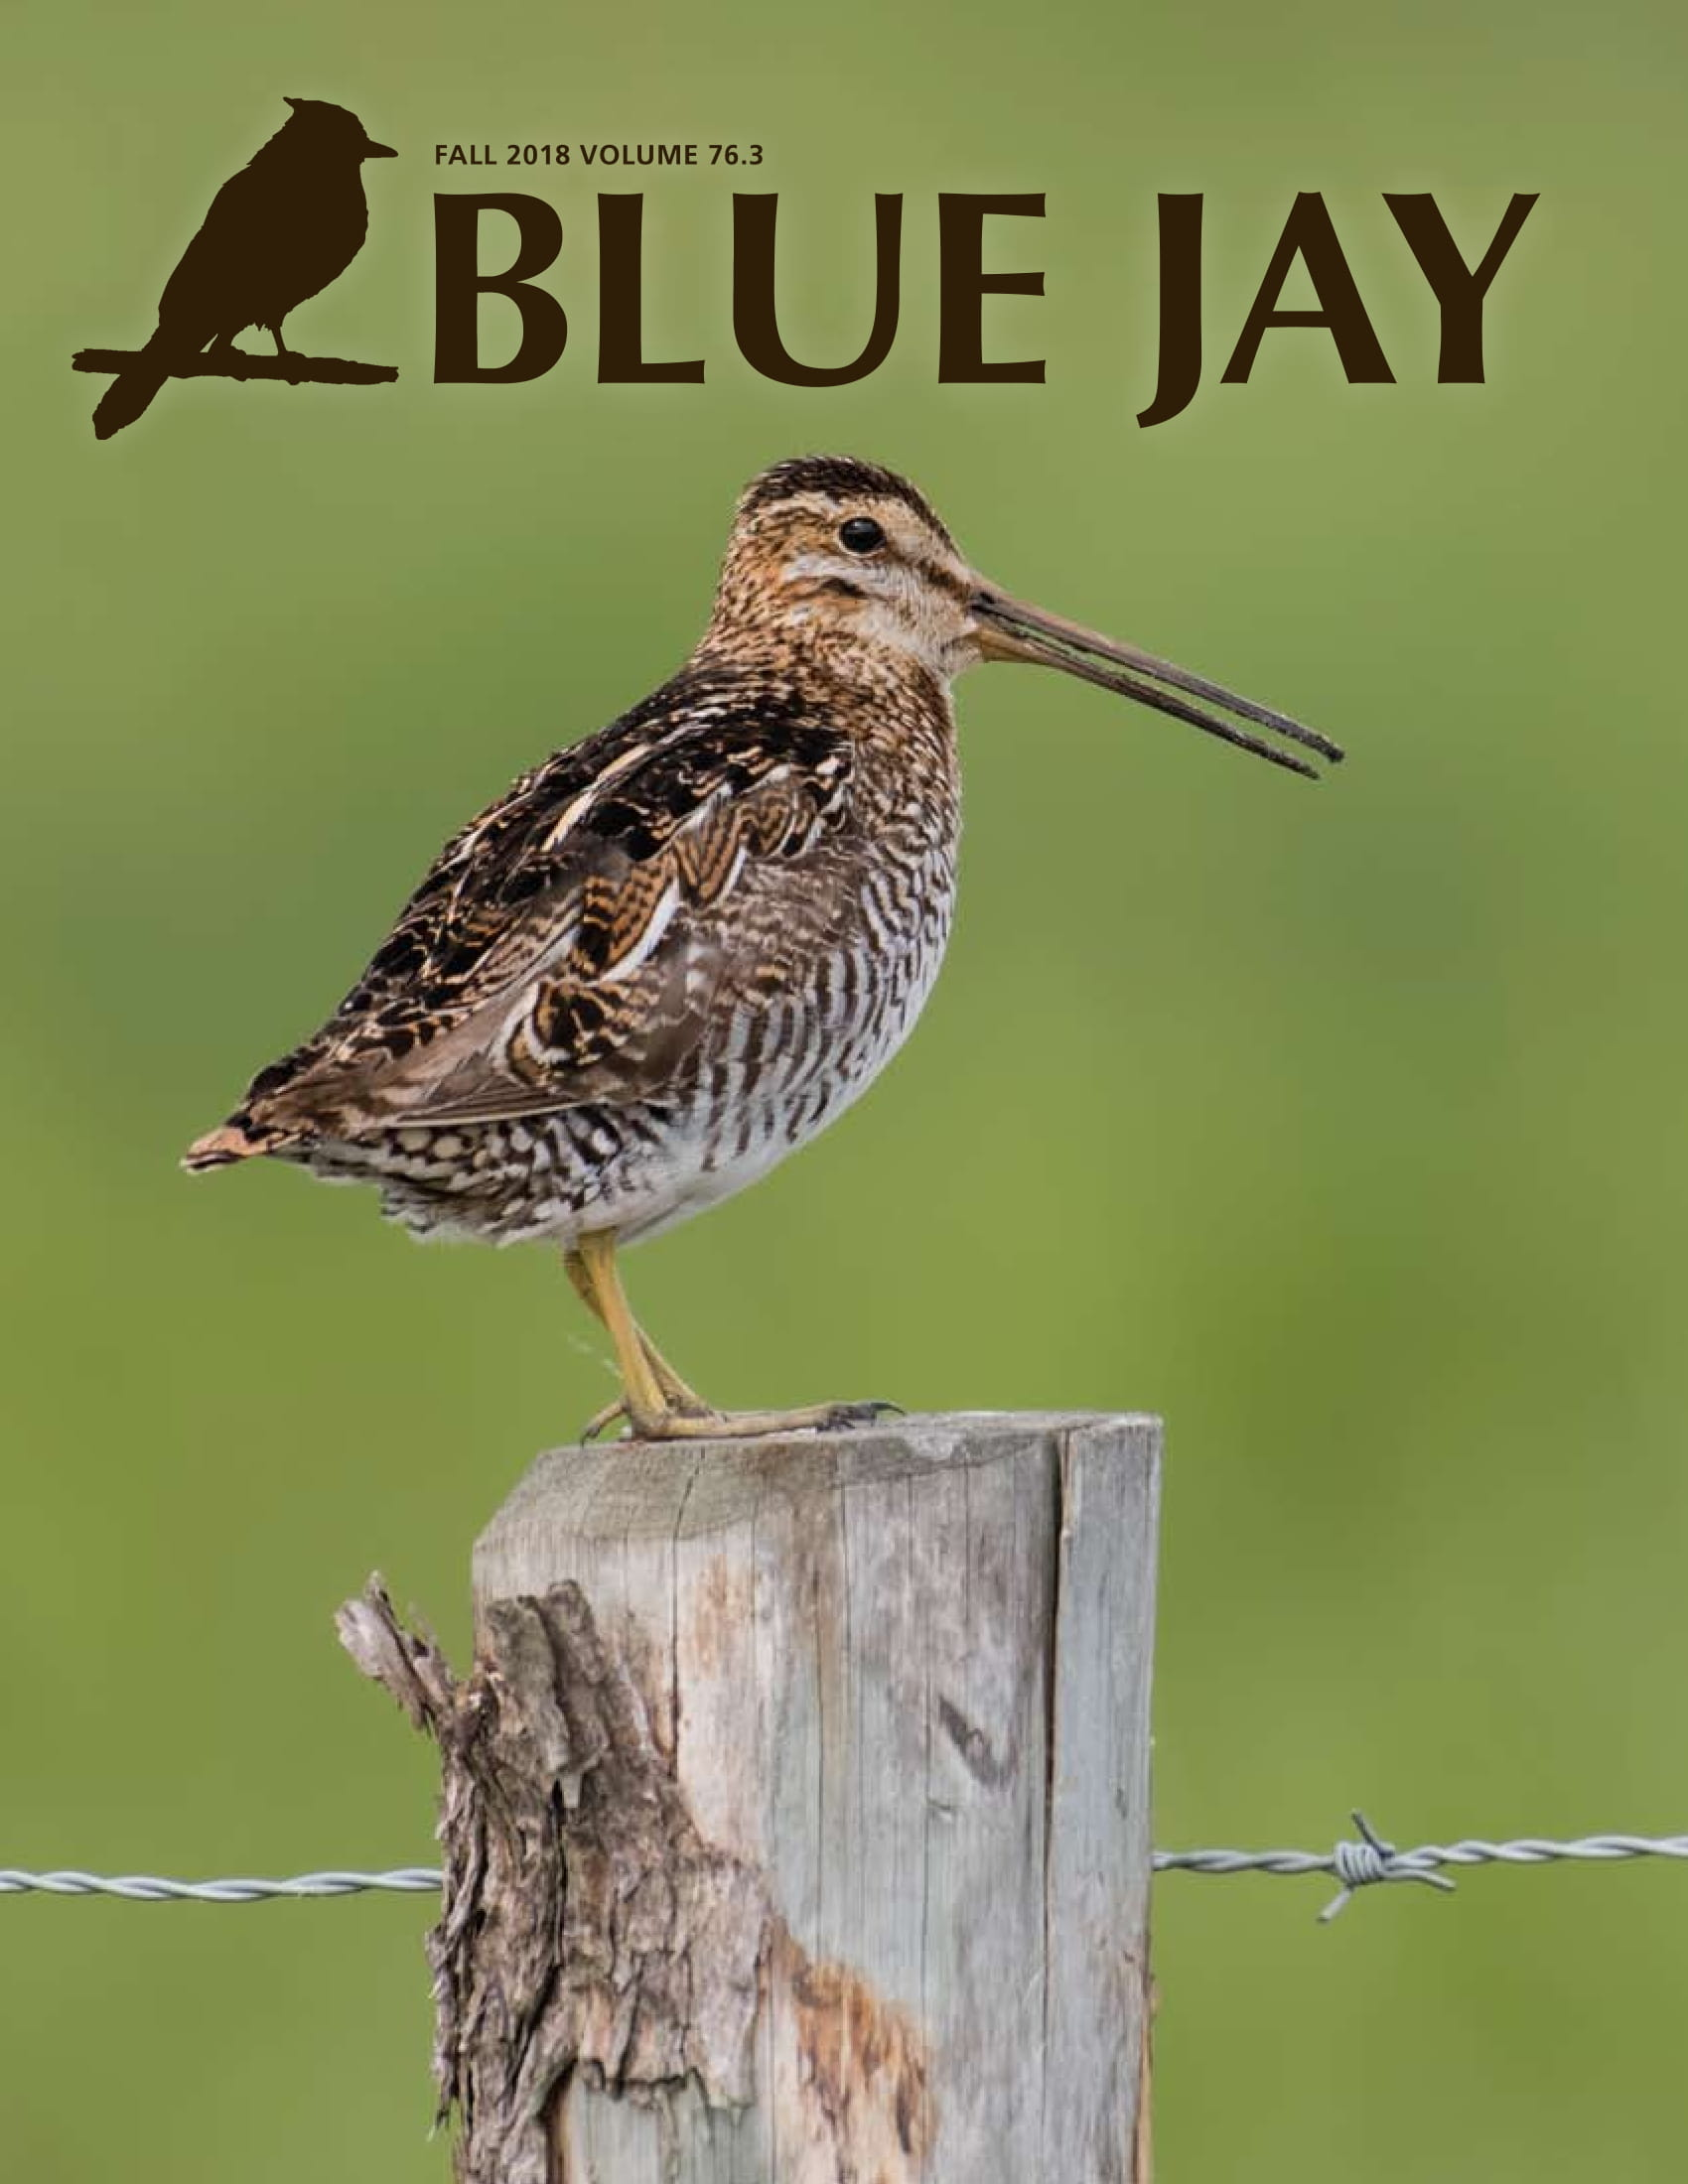 cover image featuring a Wilson's Snipe